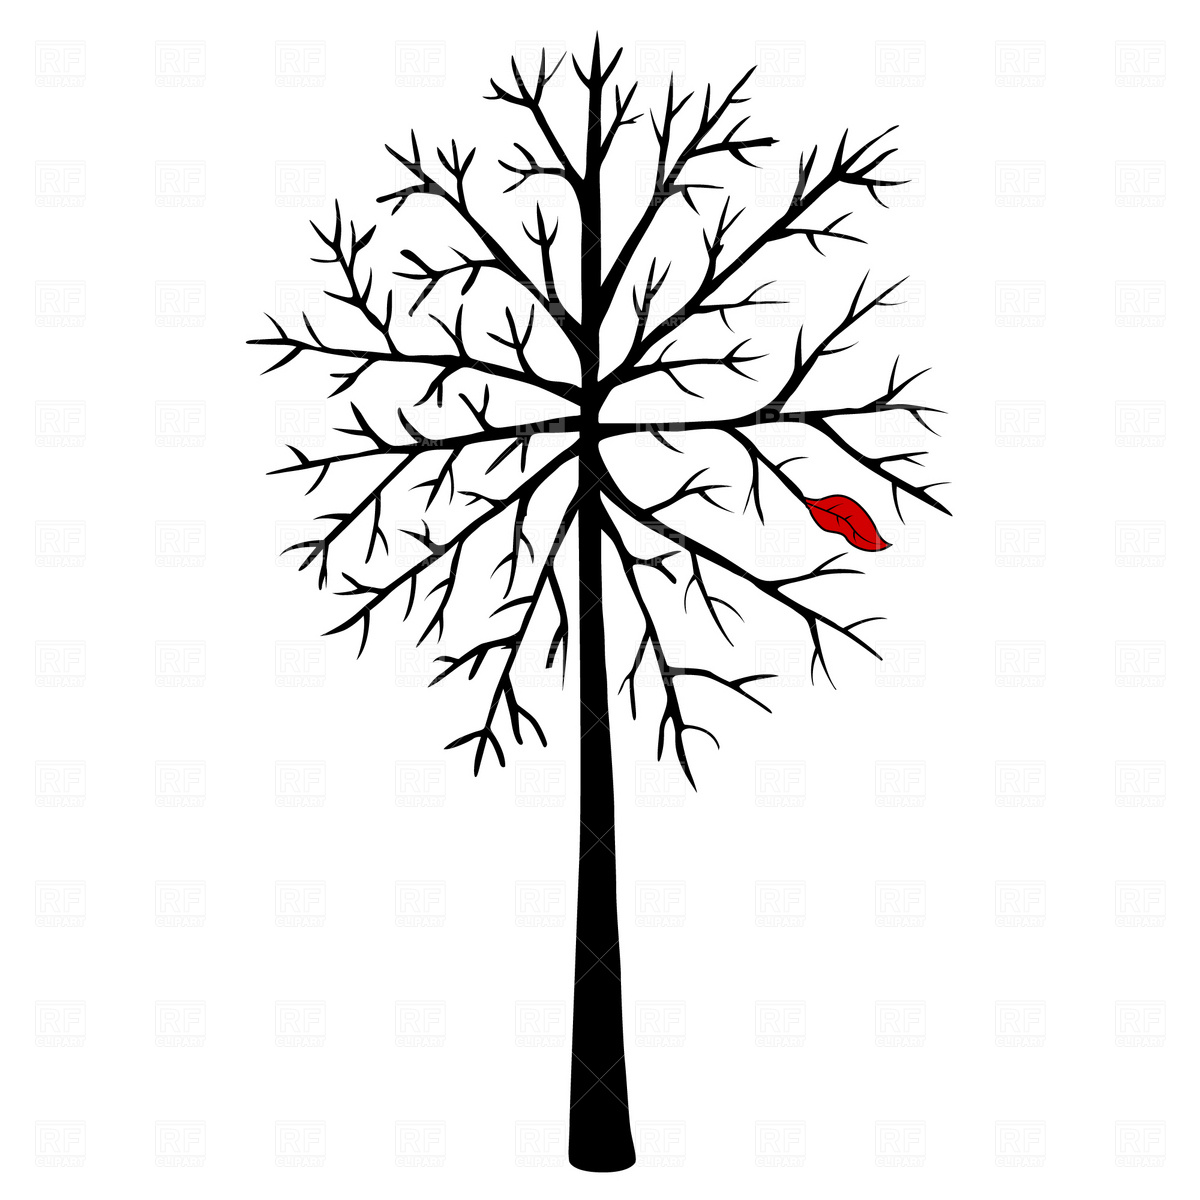 1200x1200 Bare Tree Vector Image Vector Artwork Of Plants And Animals